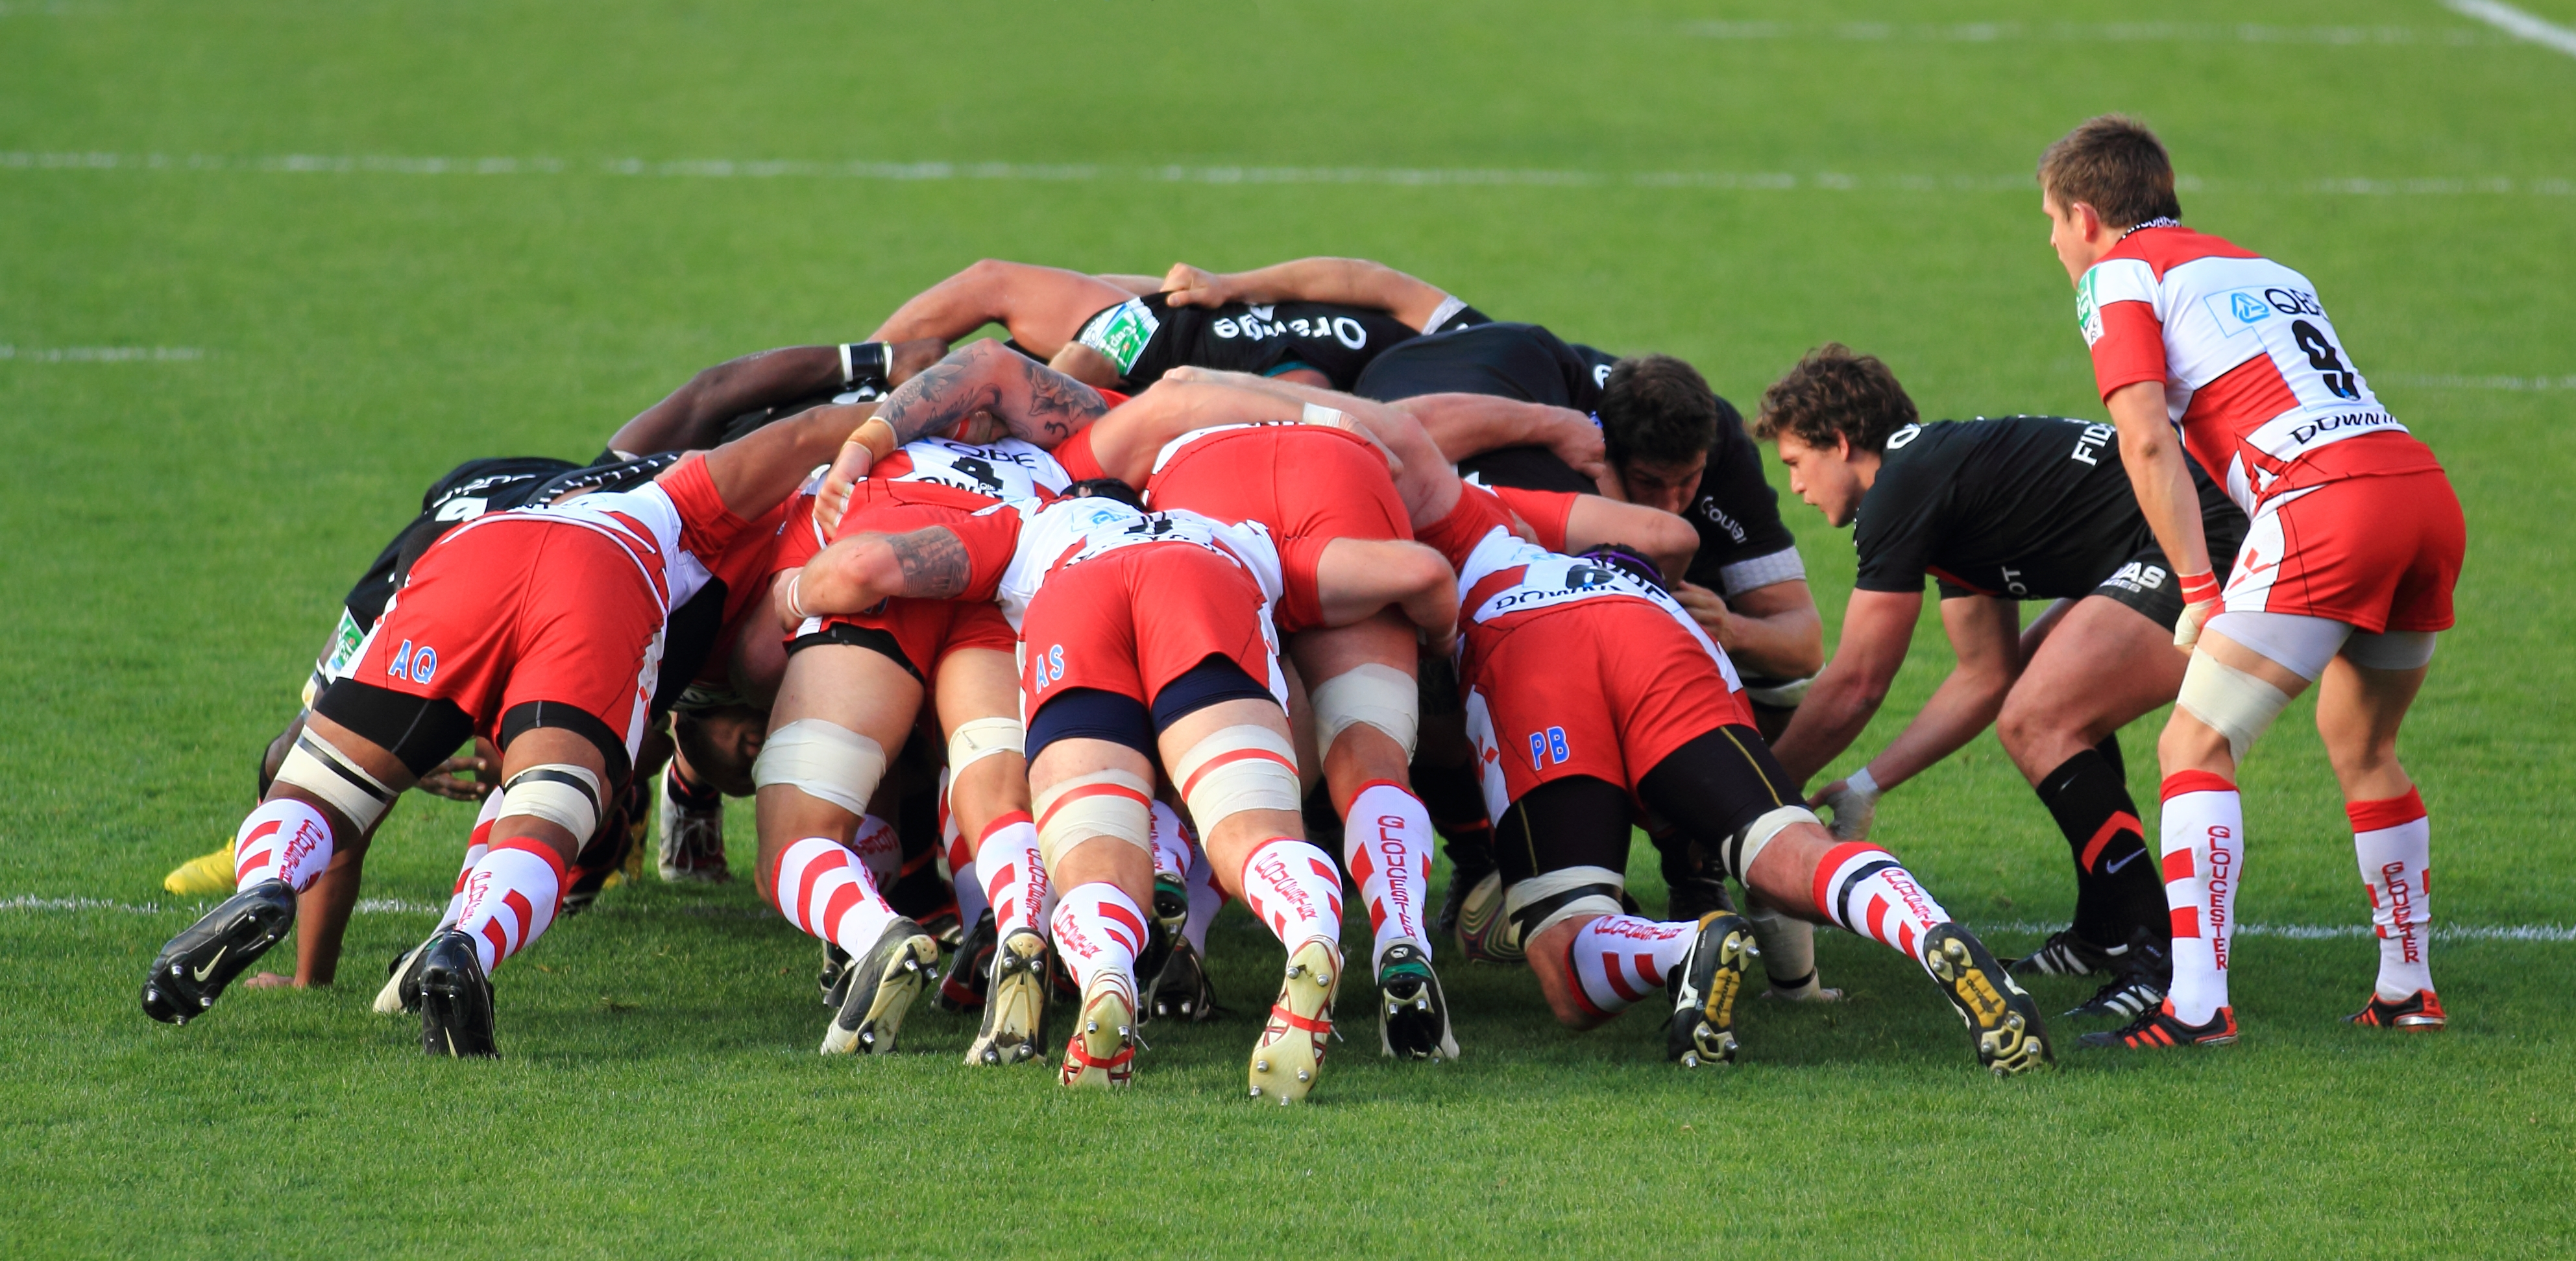 https://upload.wikimedia.org/wikipedia/commons/1/1a/ST_vs_Gloucester_-_Match_-_23.JPG